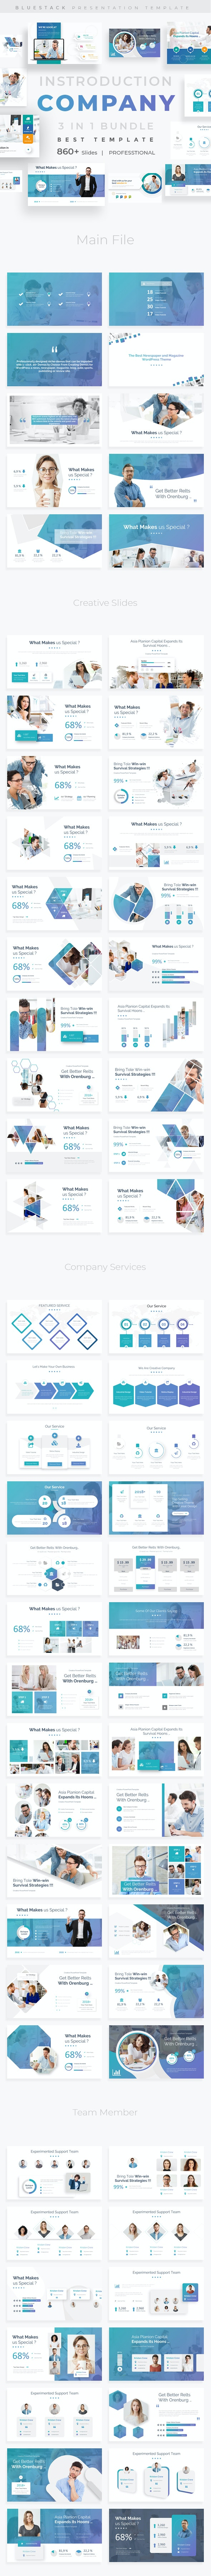 Company Introduction 3 in 1 Pitch Deck Bundle Powerpoint Template - Business PowerPoint Templates